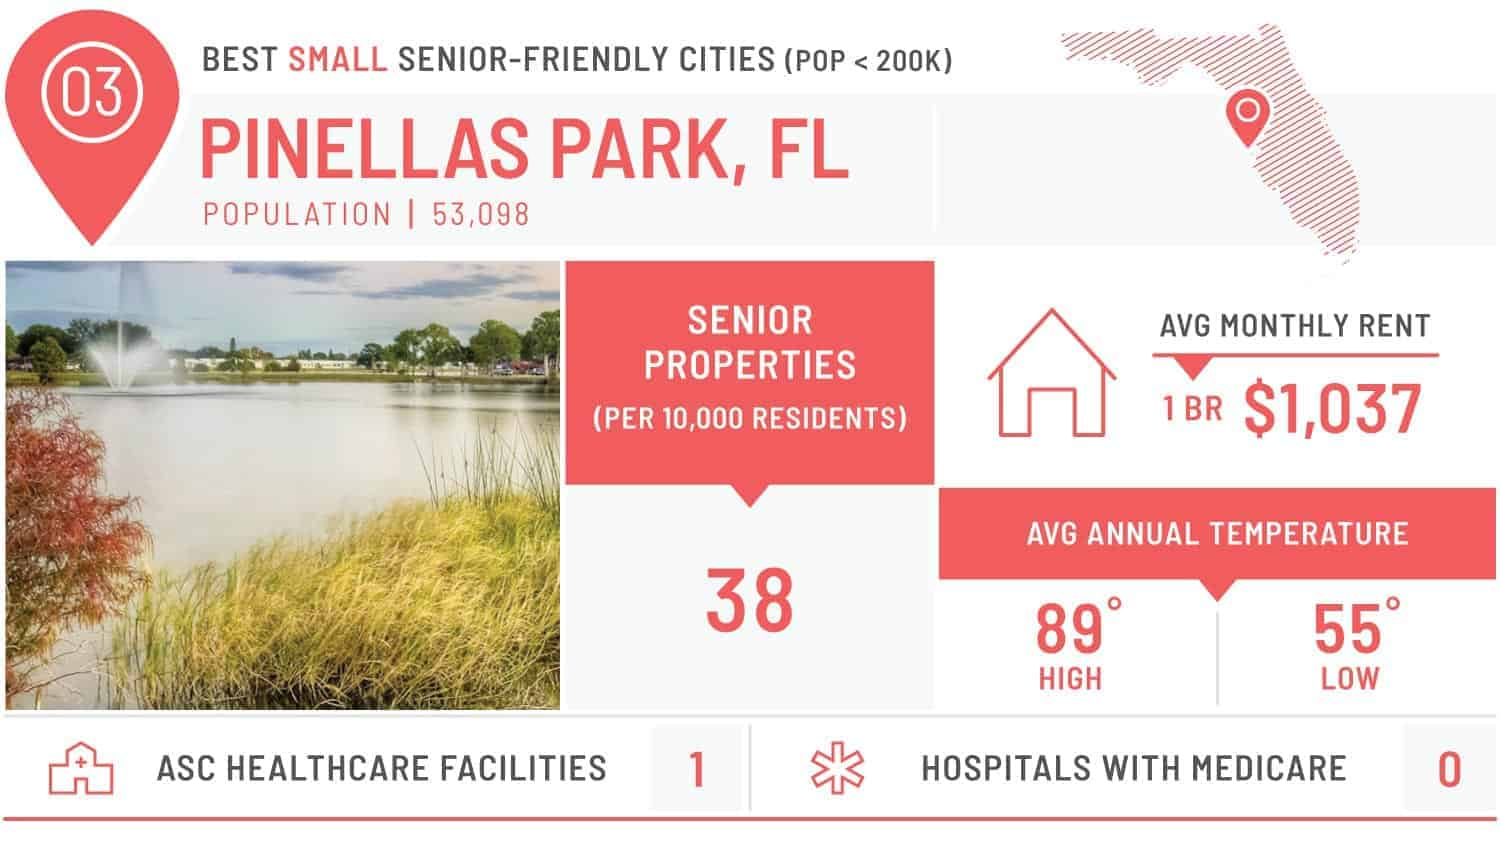 visual of the best small city for seniors - pinellas park